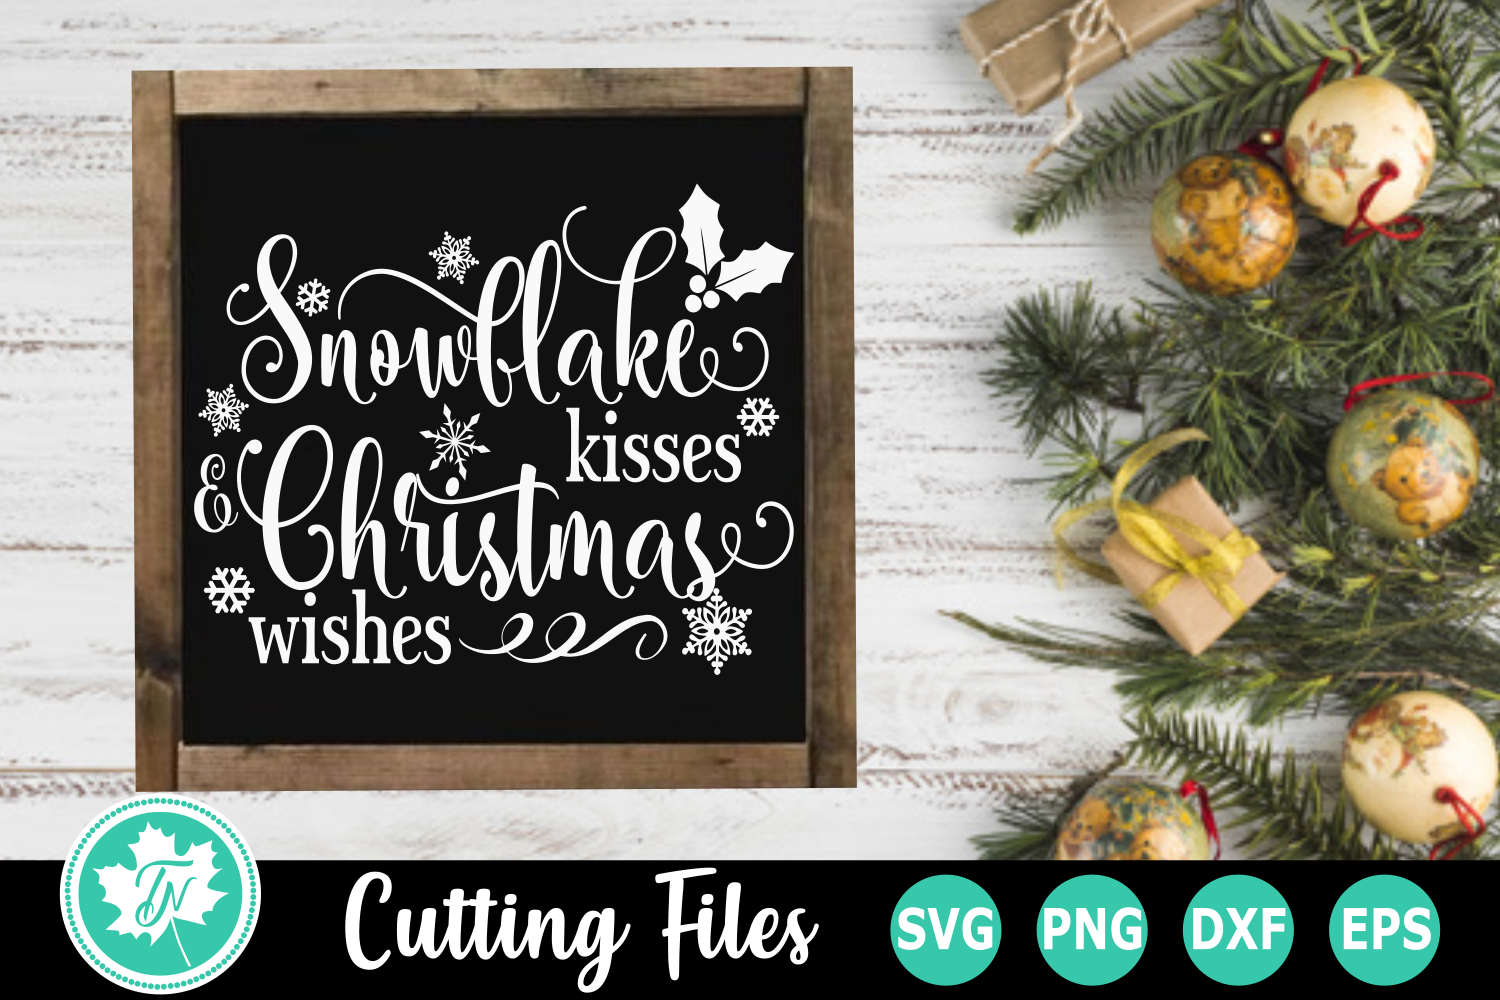 Snowflake Kisses Christmas Wishes - A Christmas SVG Cut File example image 1